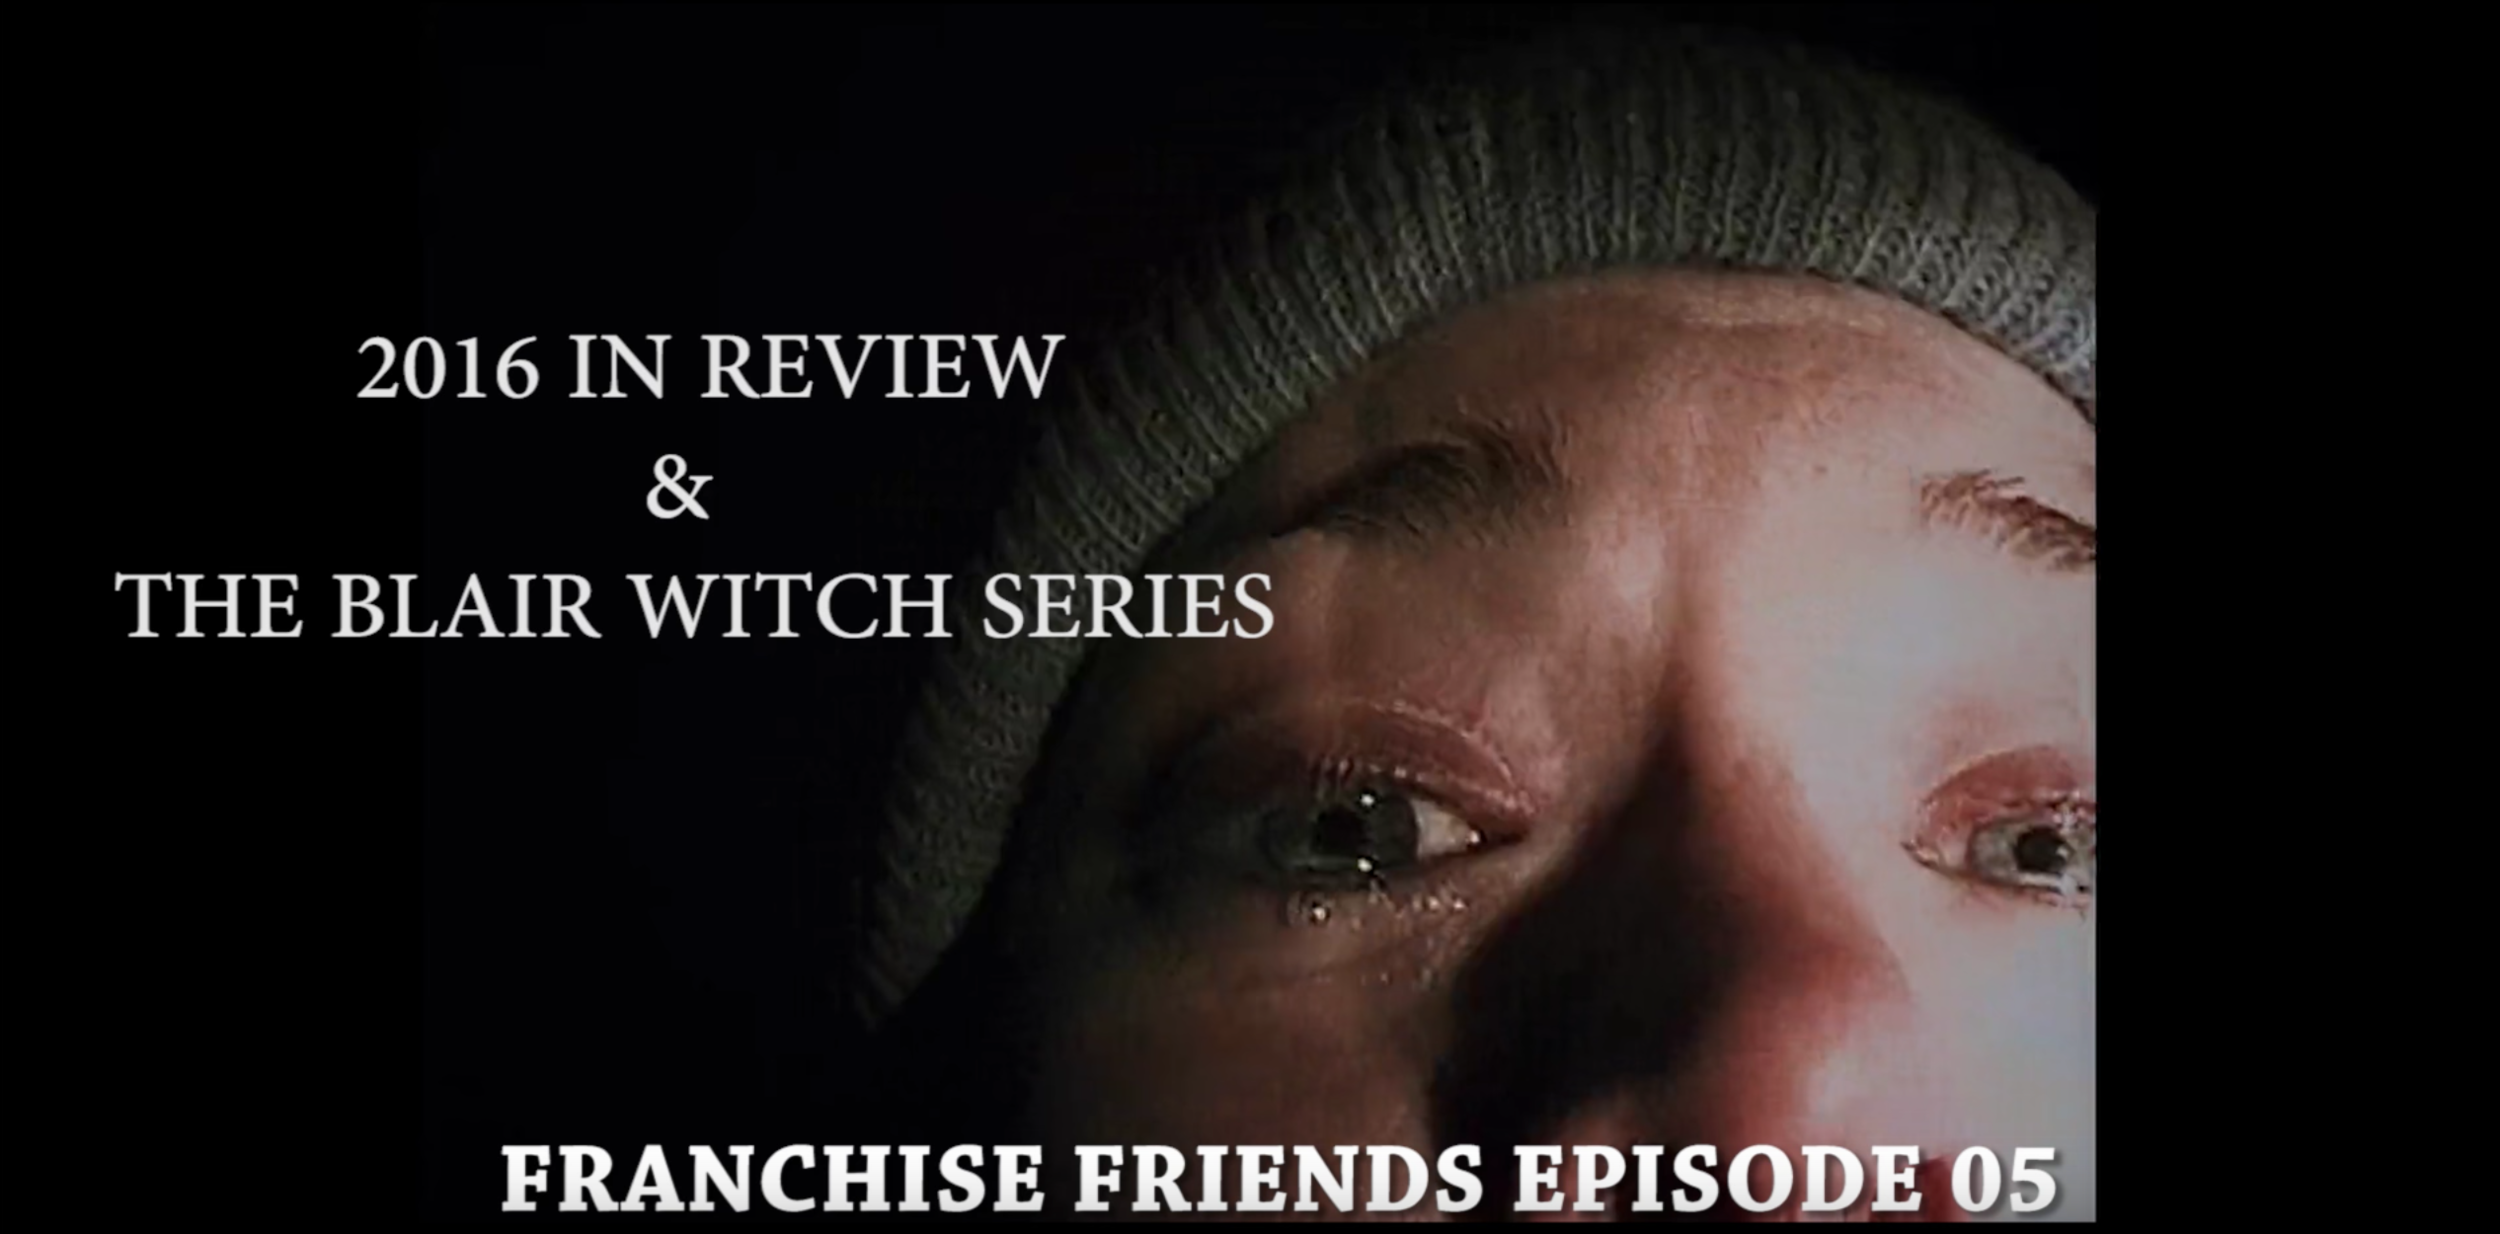 Blair Witch Episode 05 Title Card.png